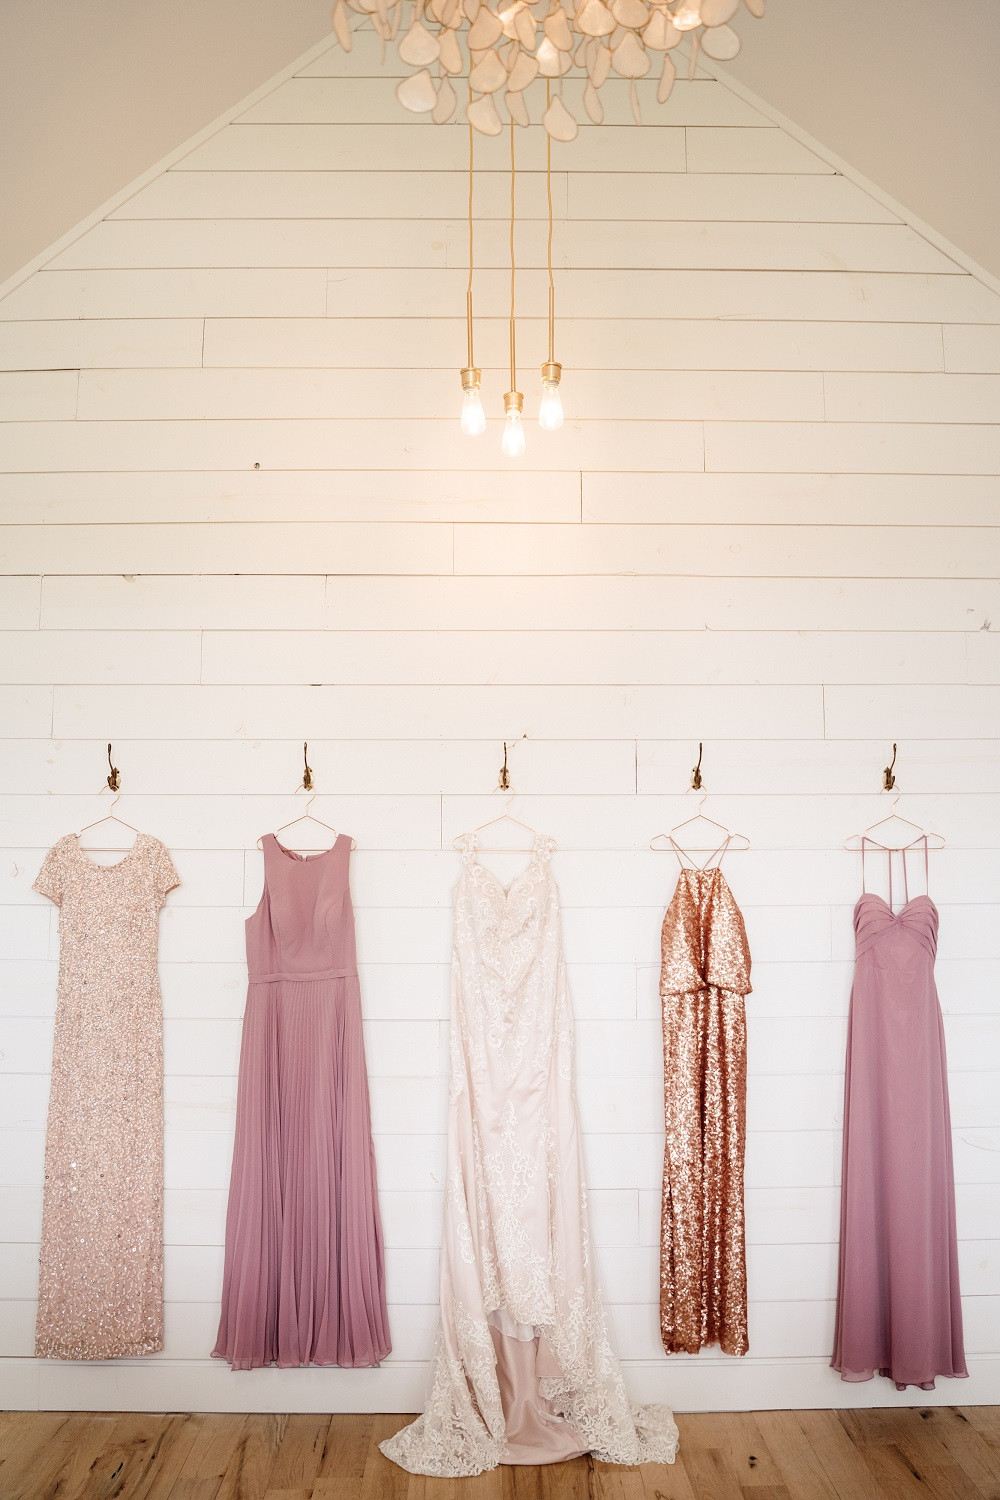 blush and mauve bridesmaid dresses hanging against shiplap wall at Little Lights